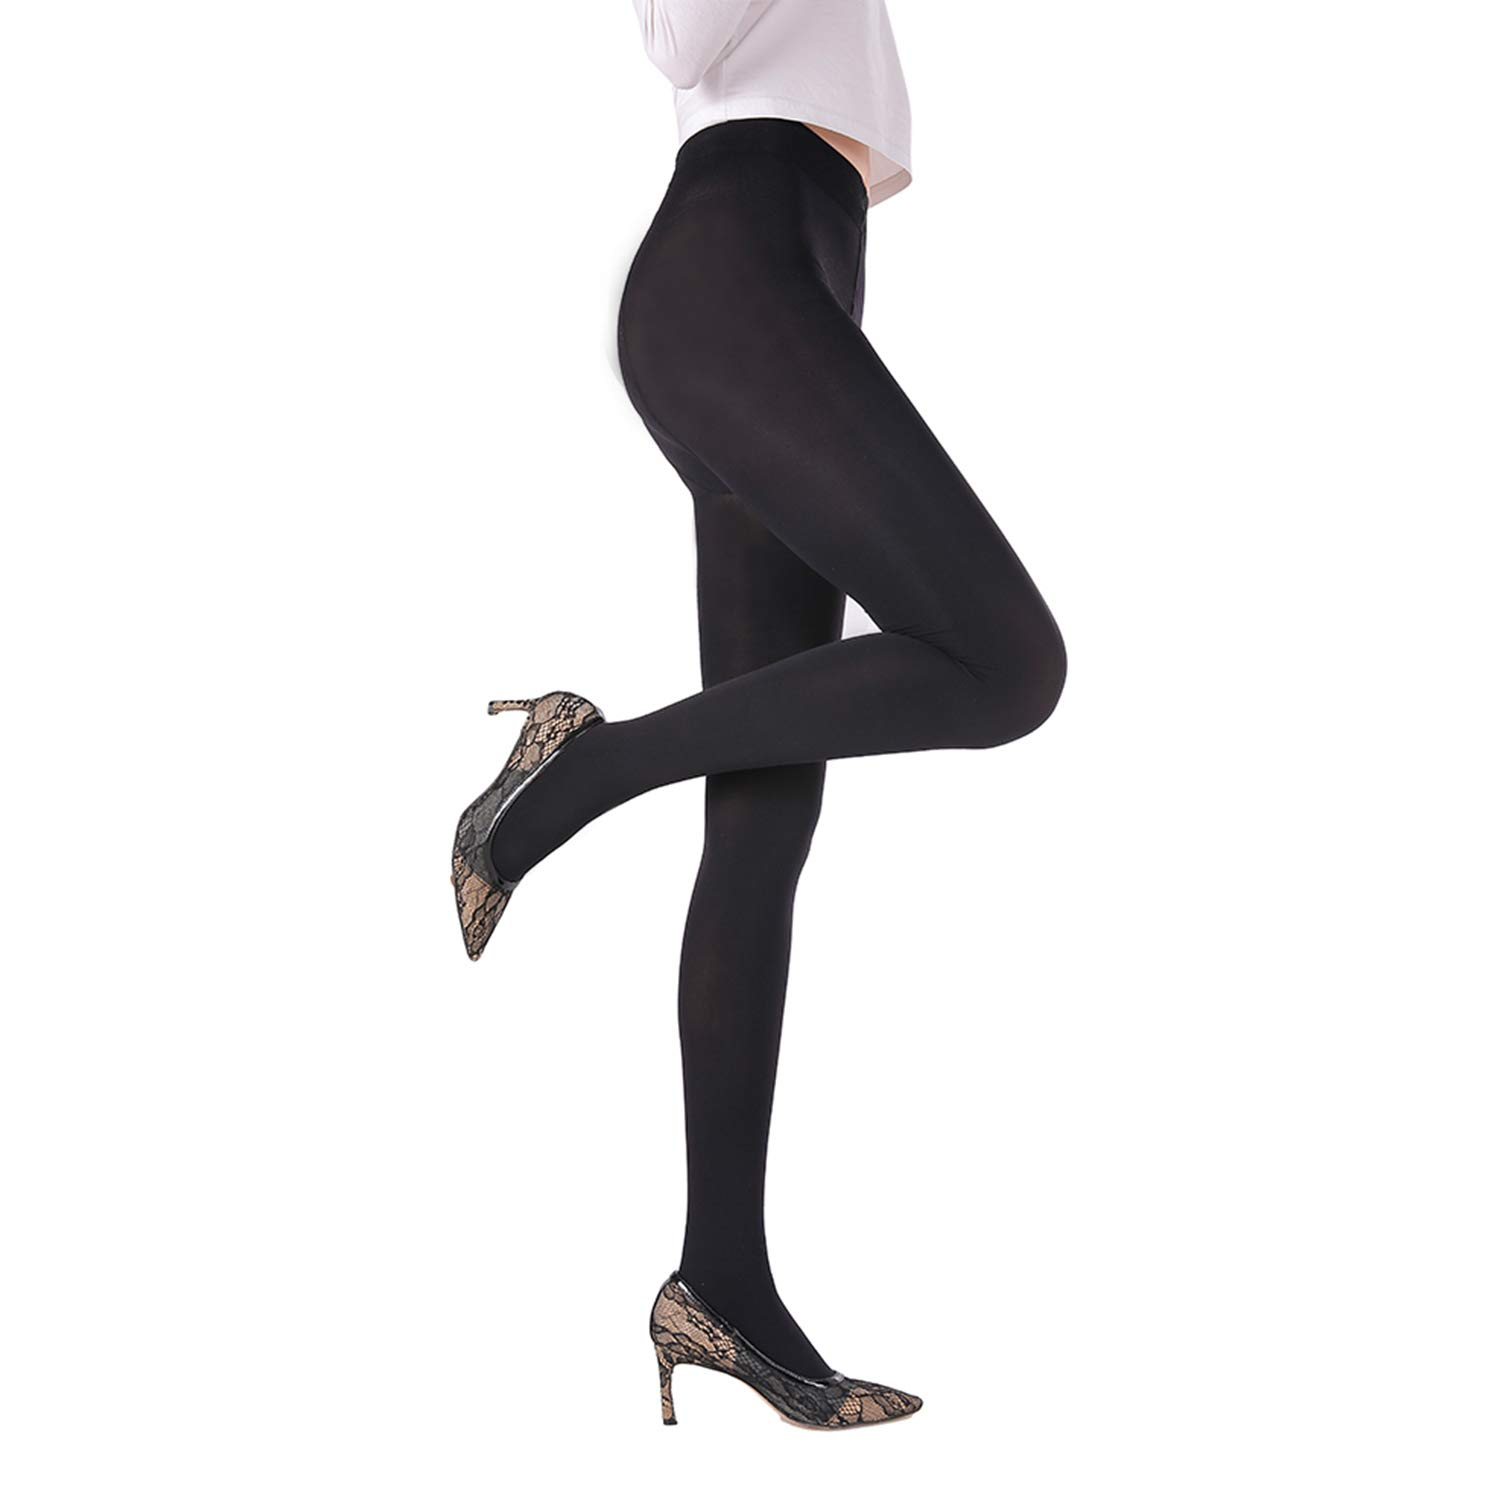 bf87144e849 WEANMIX Women s Super Opaque Tights Control Top Nude Pantyhose Footed Soft  Solid Color Black at Amazon Women s Clothing store